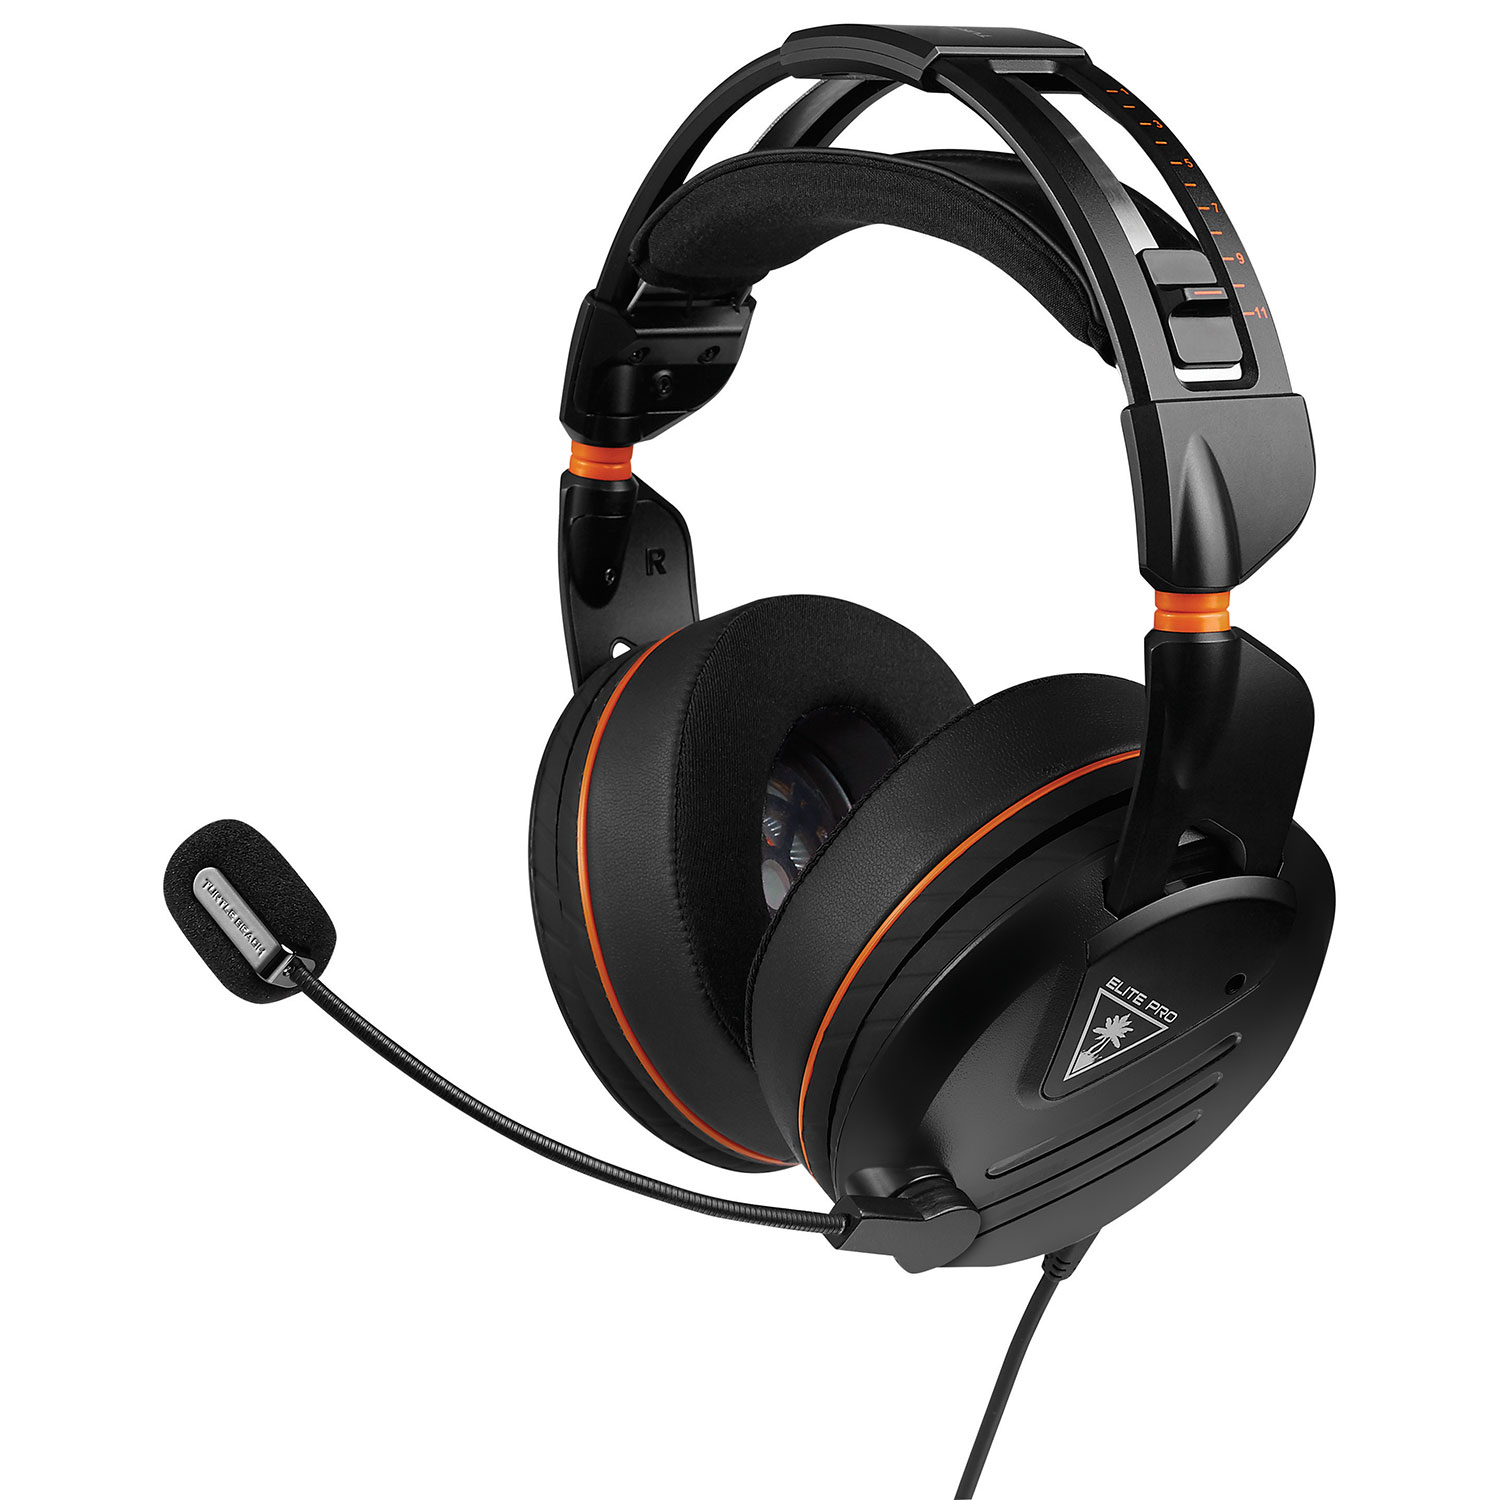 Best gaming headsets for CS:GO in 2019 - Headphones Approved by Pro